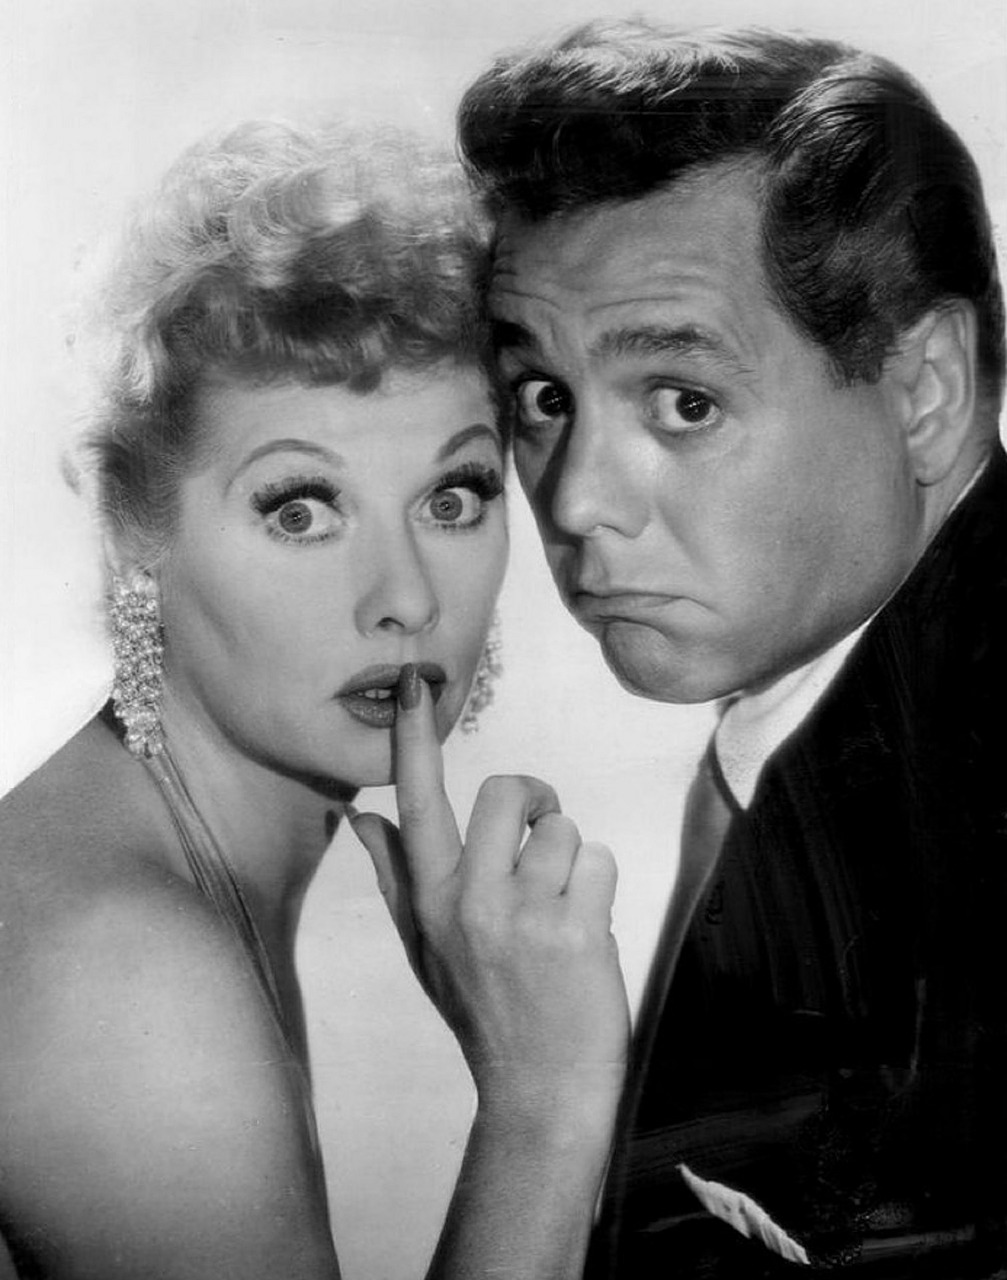 I Love Lucy was among the Early Television Shows that defined a generation